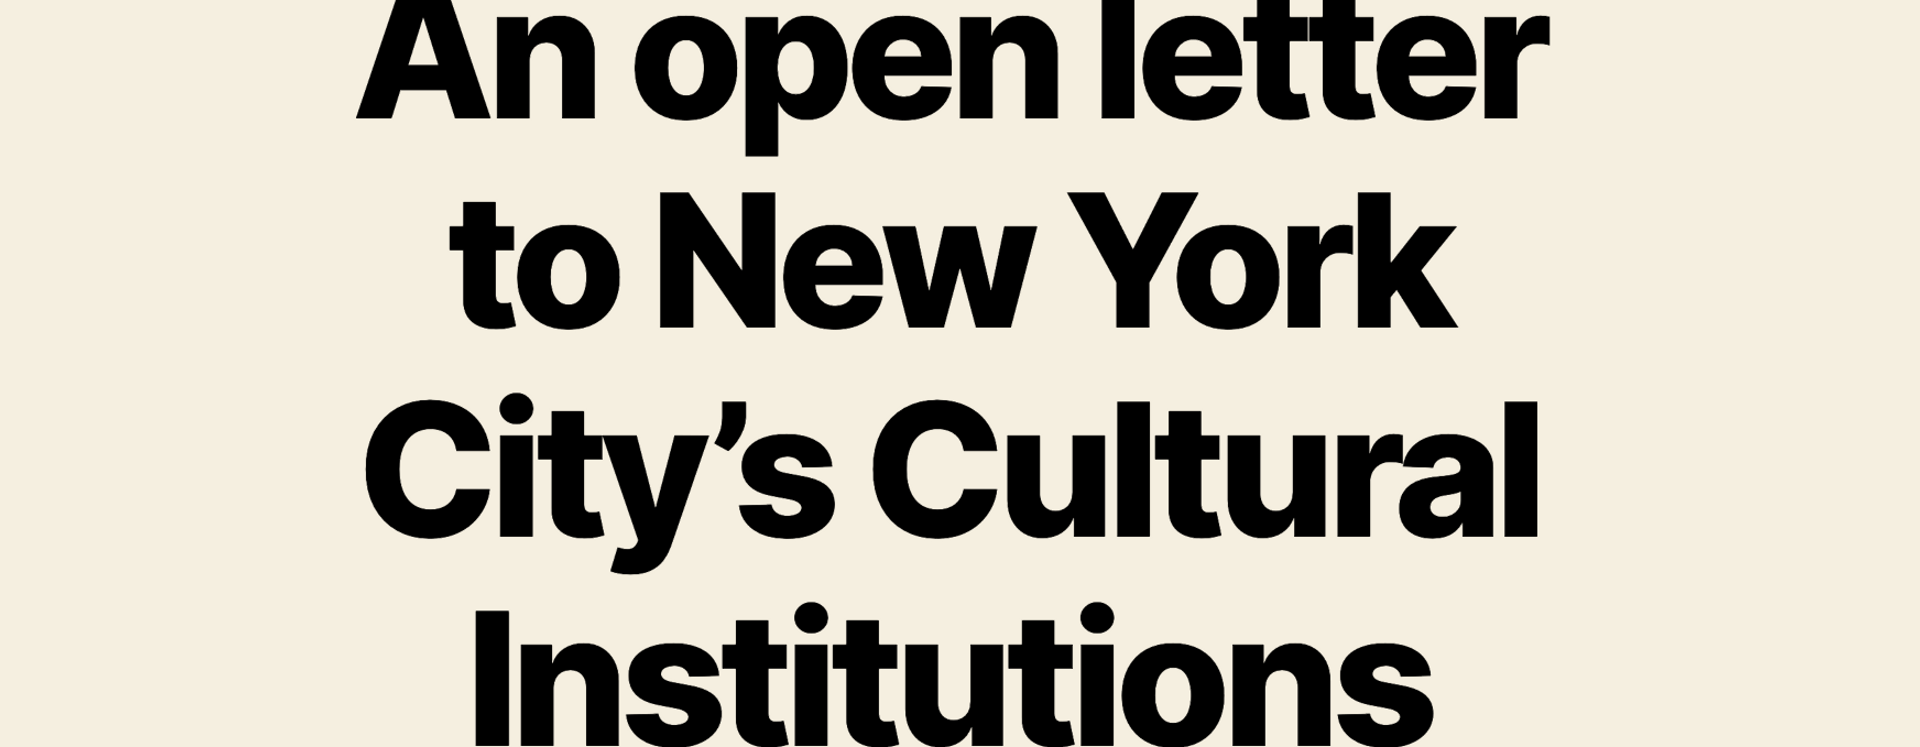 An open letter to New York City's Cultural Institutions